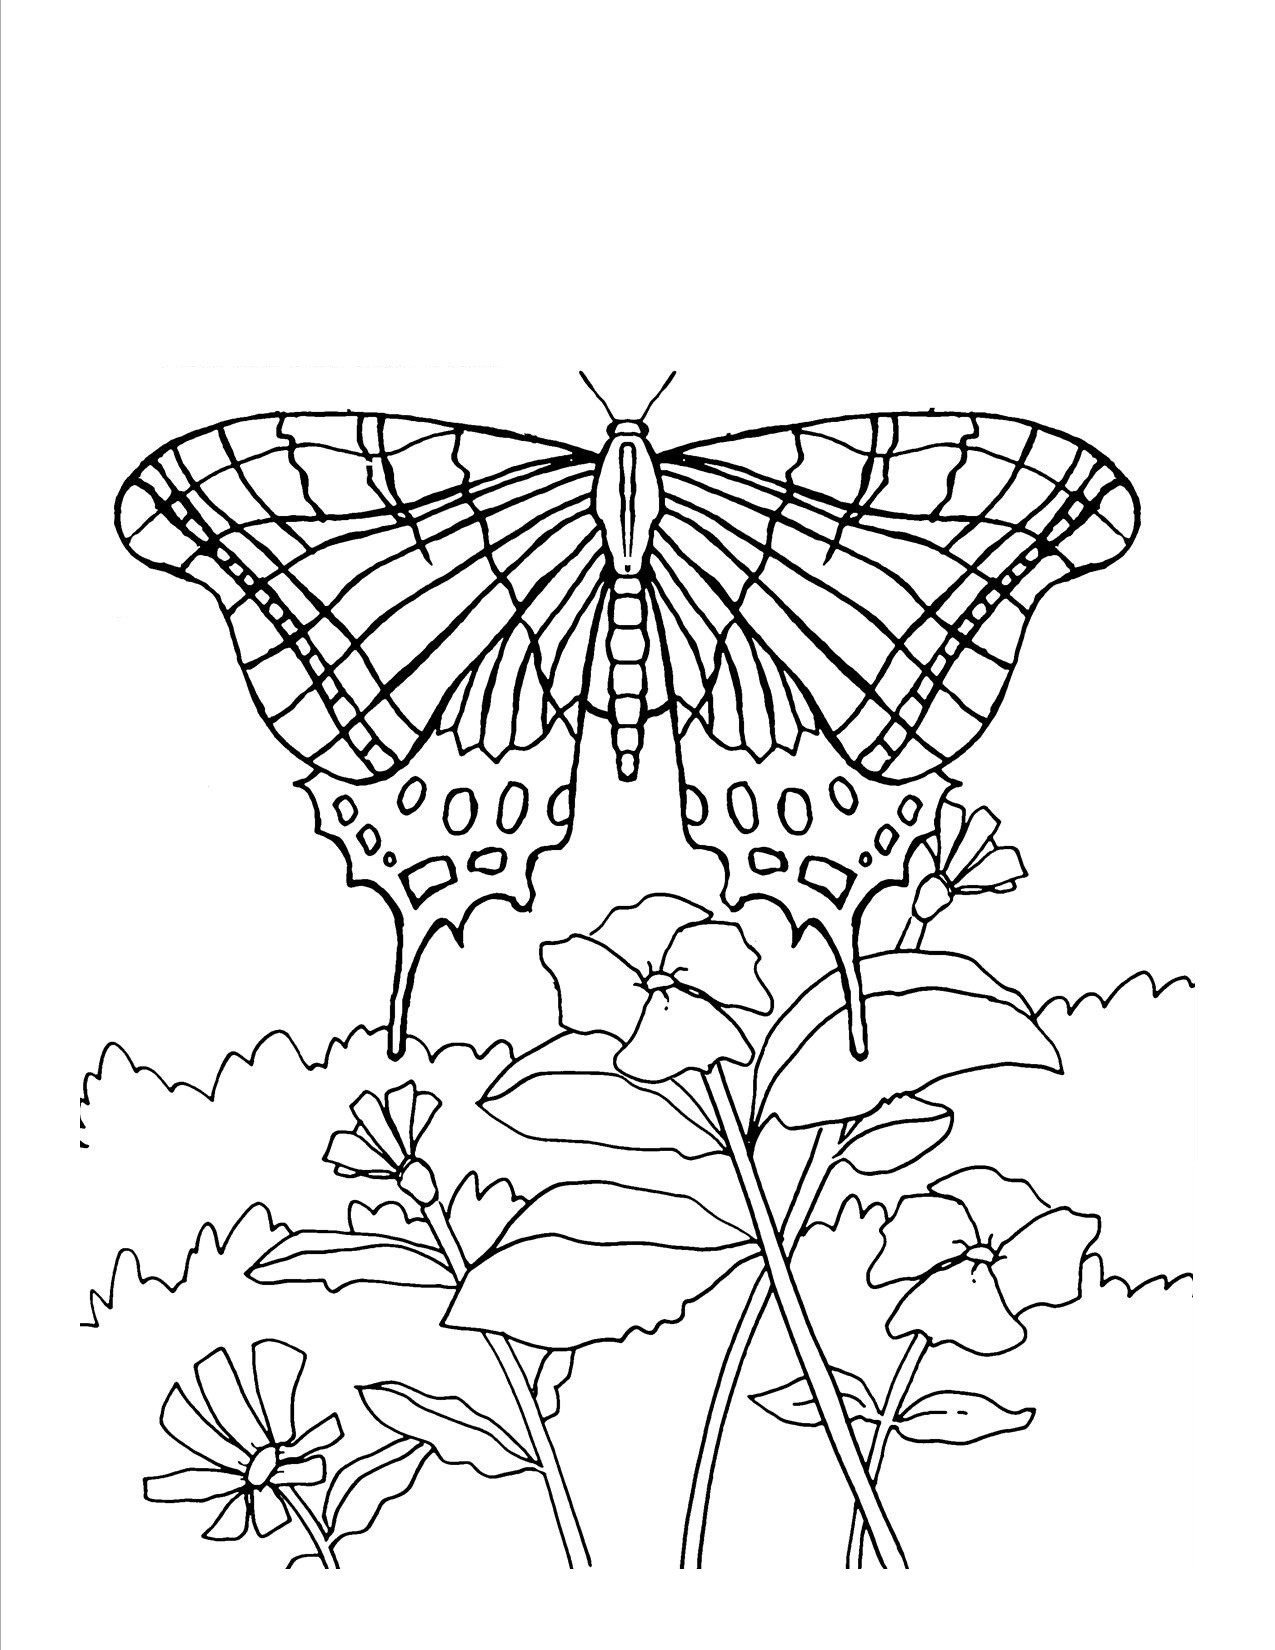 butterfly coloring sheet printable butterfly coloring pages minister coloring sheet printable coloring butterfly